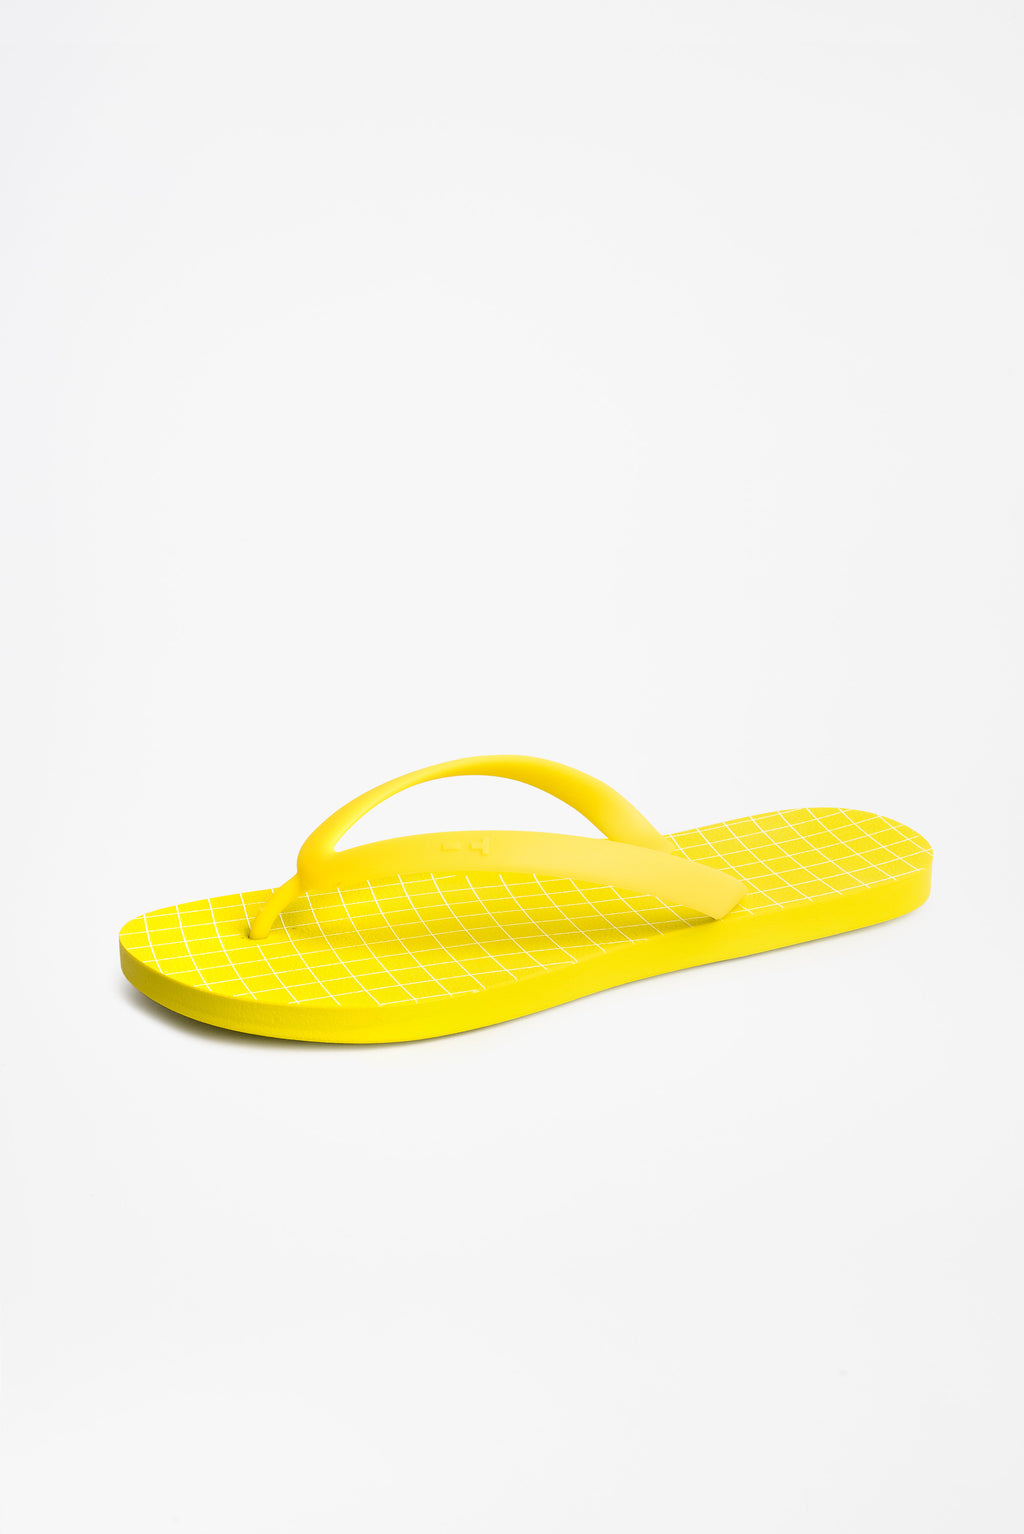 Side view of men's flip flops in acid yellow with a white grid pattern